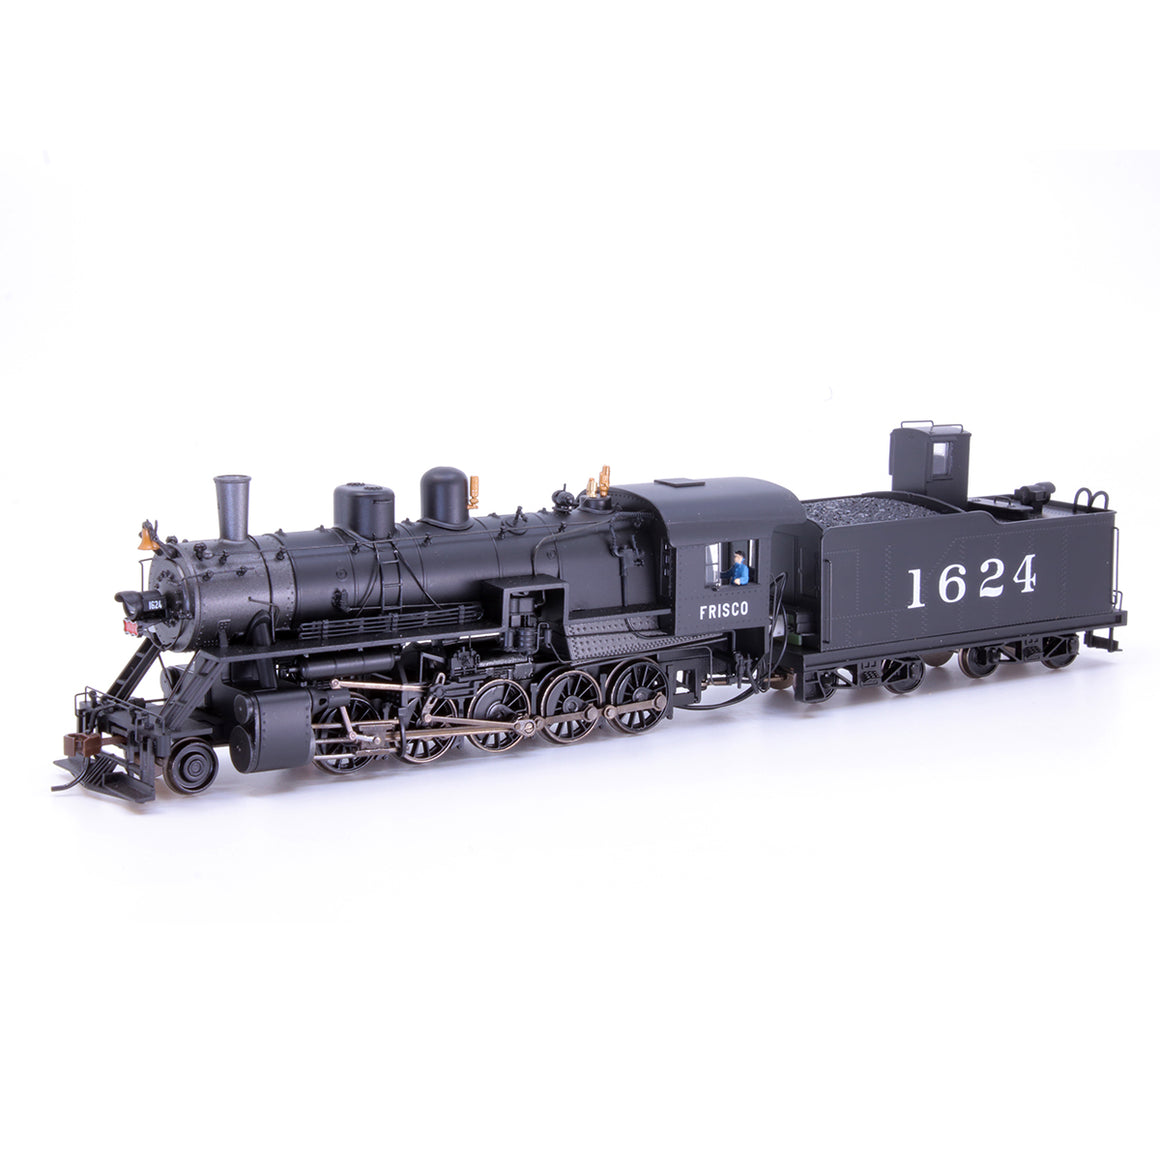 HO Scale: 2-10-0 Russian Decapod - DCC & Sound - Frisco 'w/ DogHouse